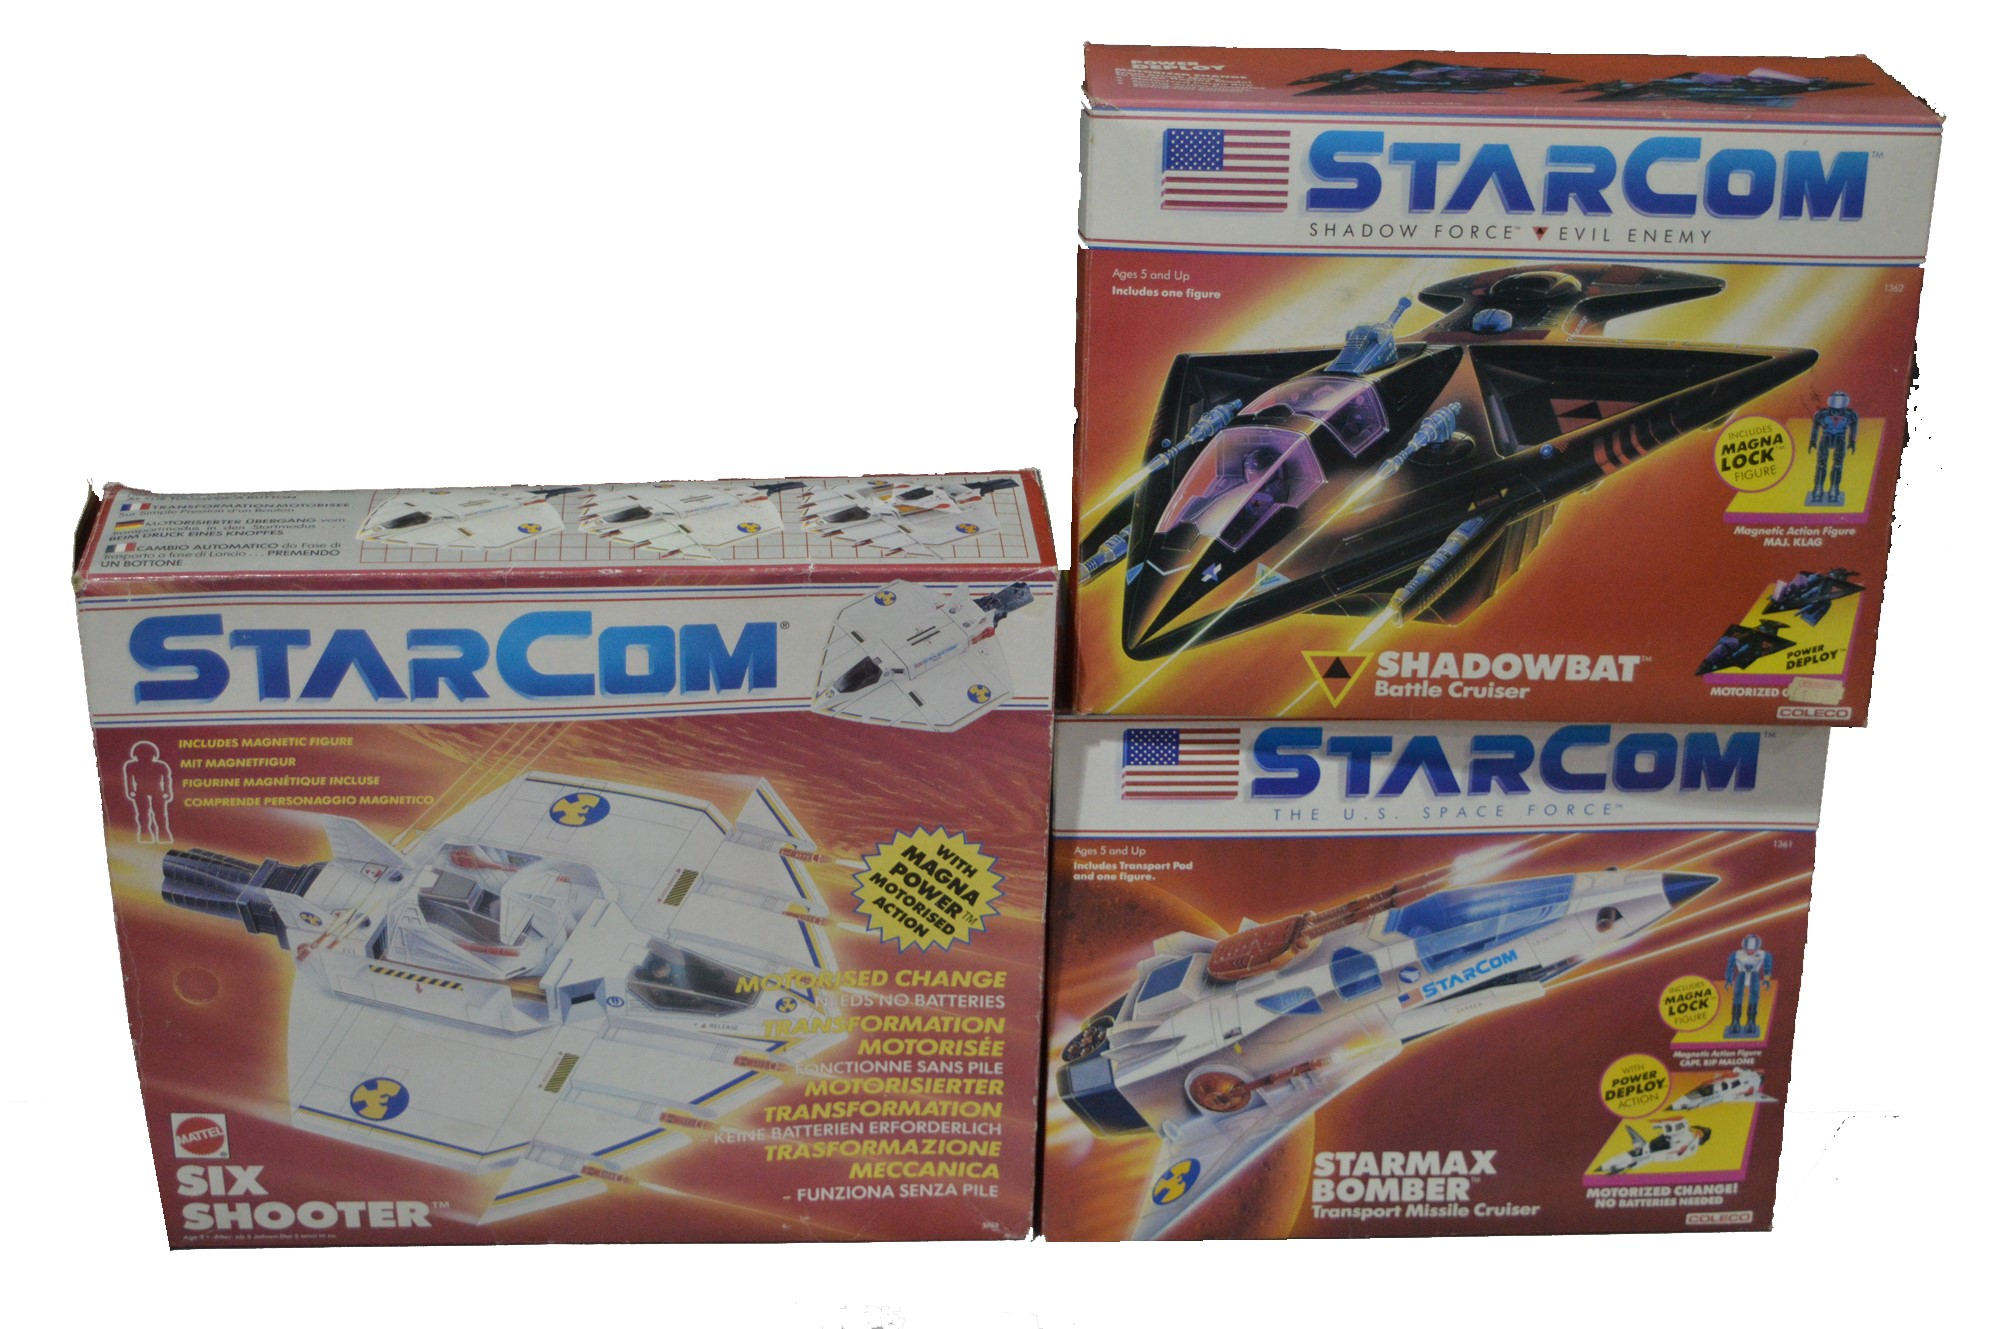 Starcom vehicles by Mattel and Coleco